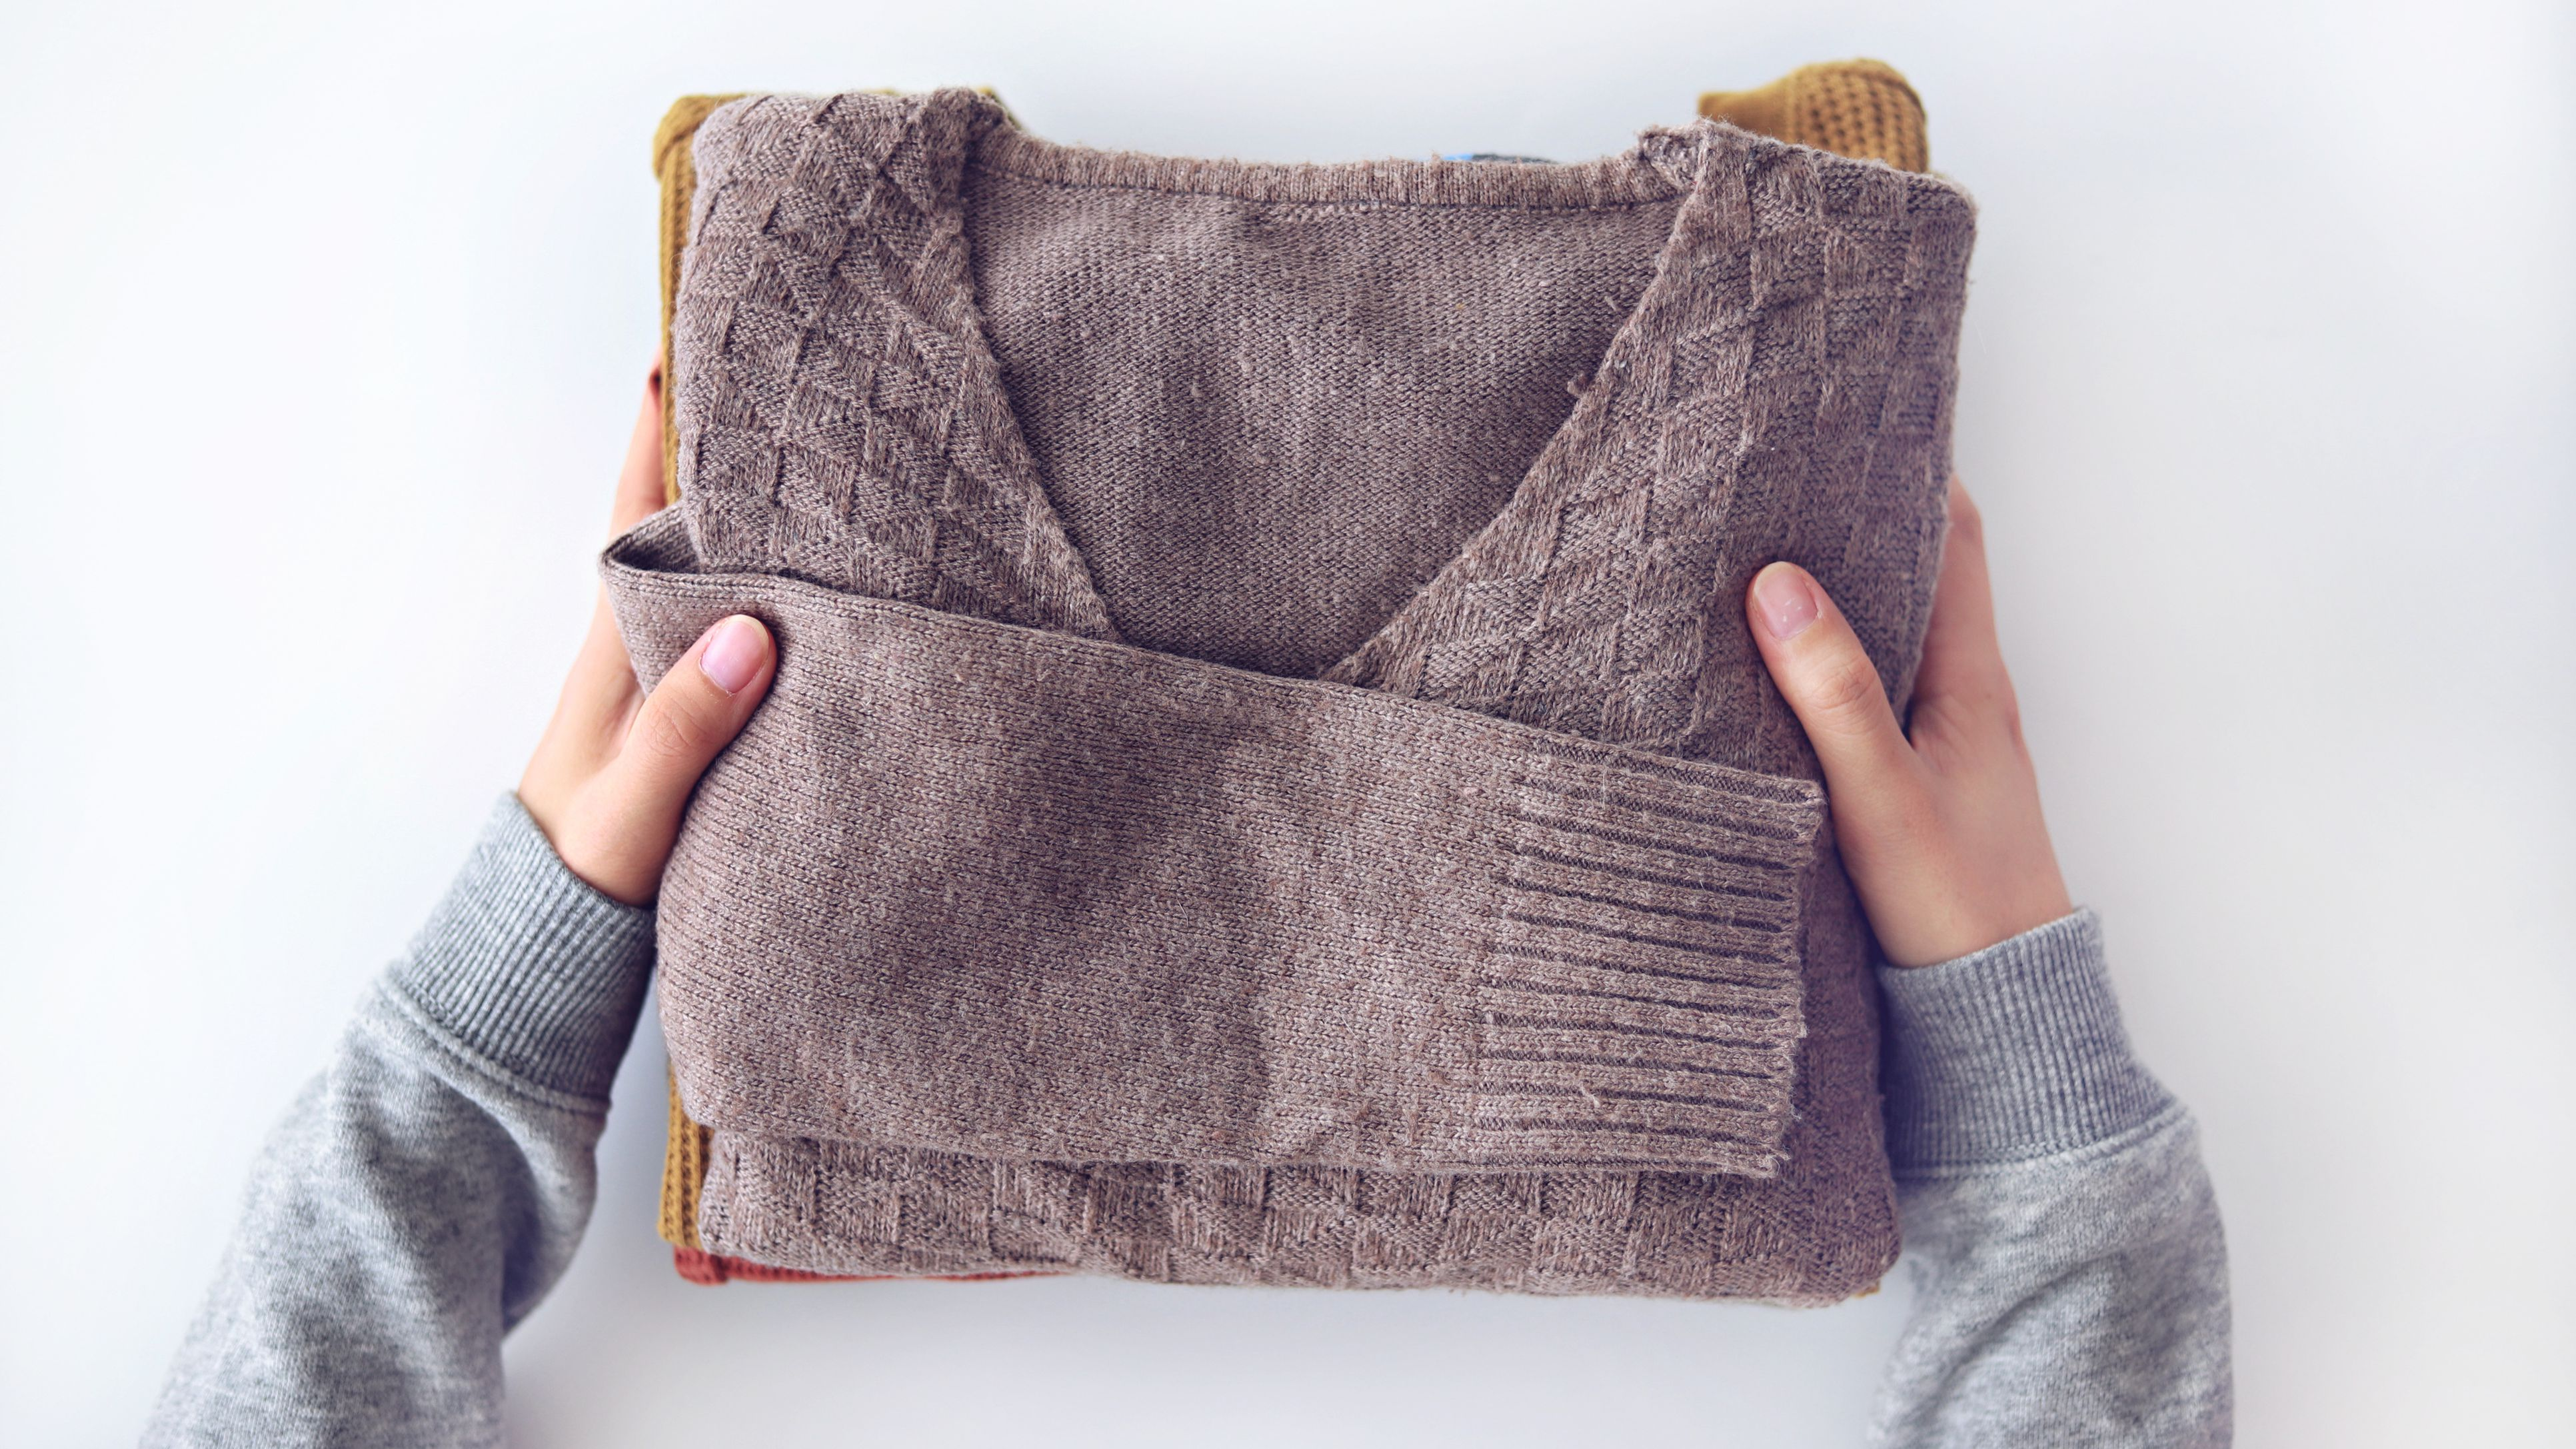 How To Clean Wool Sweaters With Vinegar